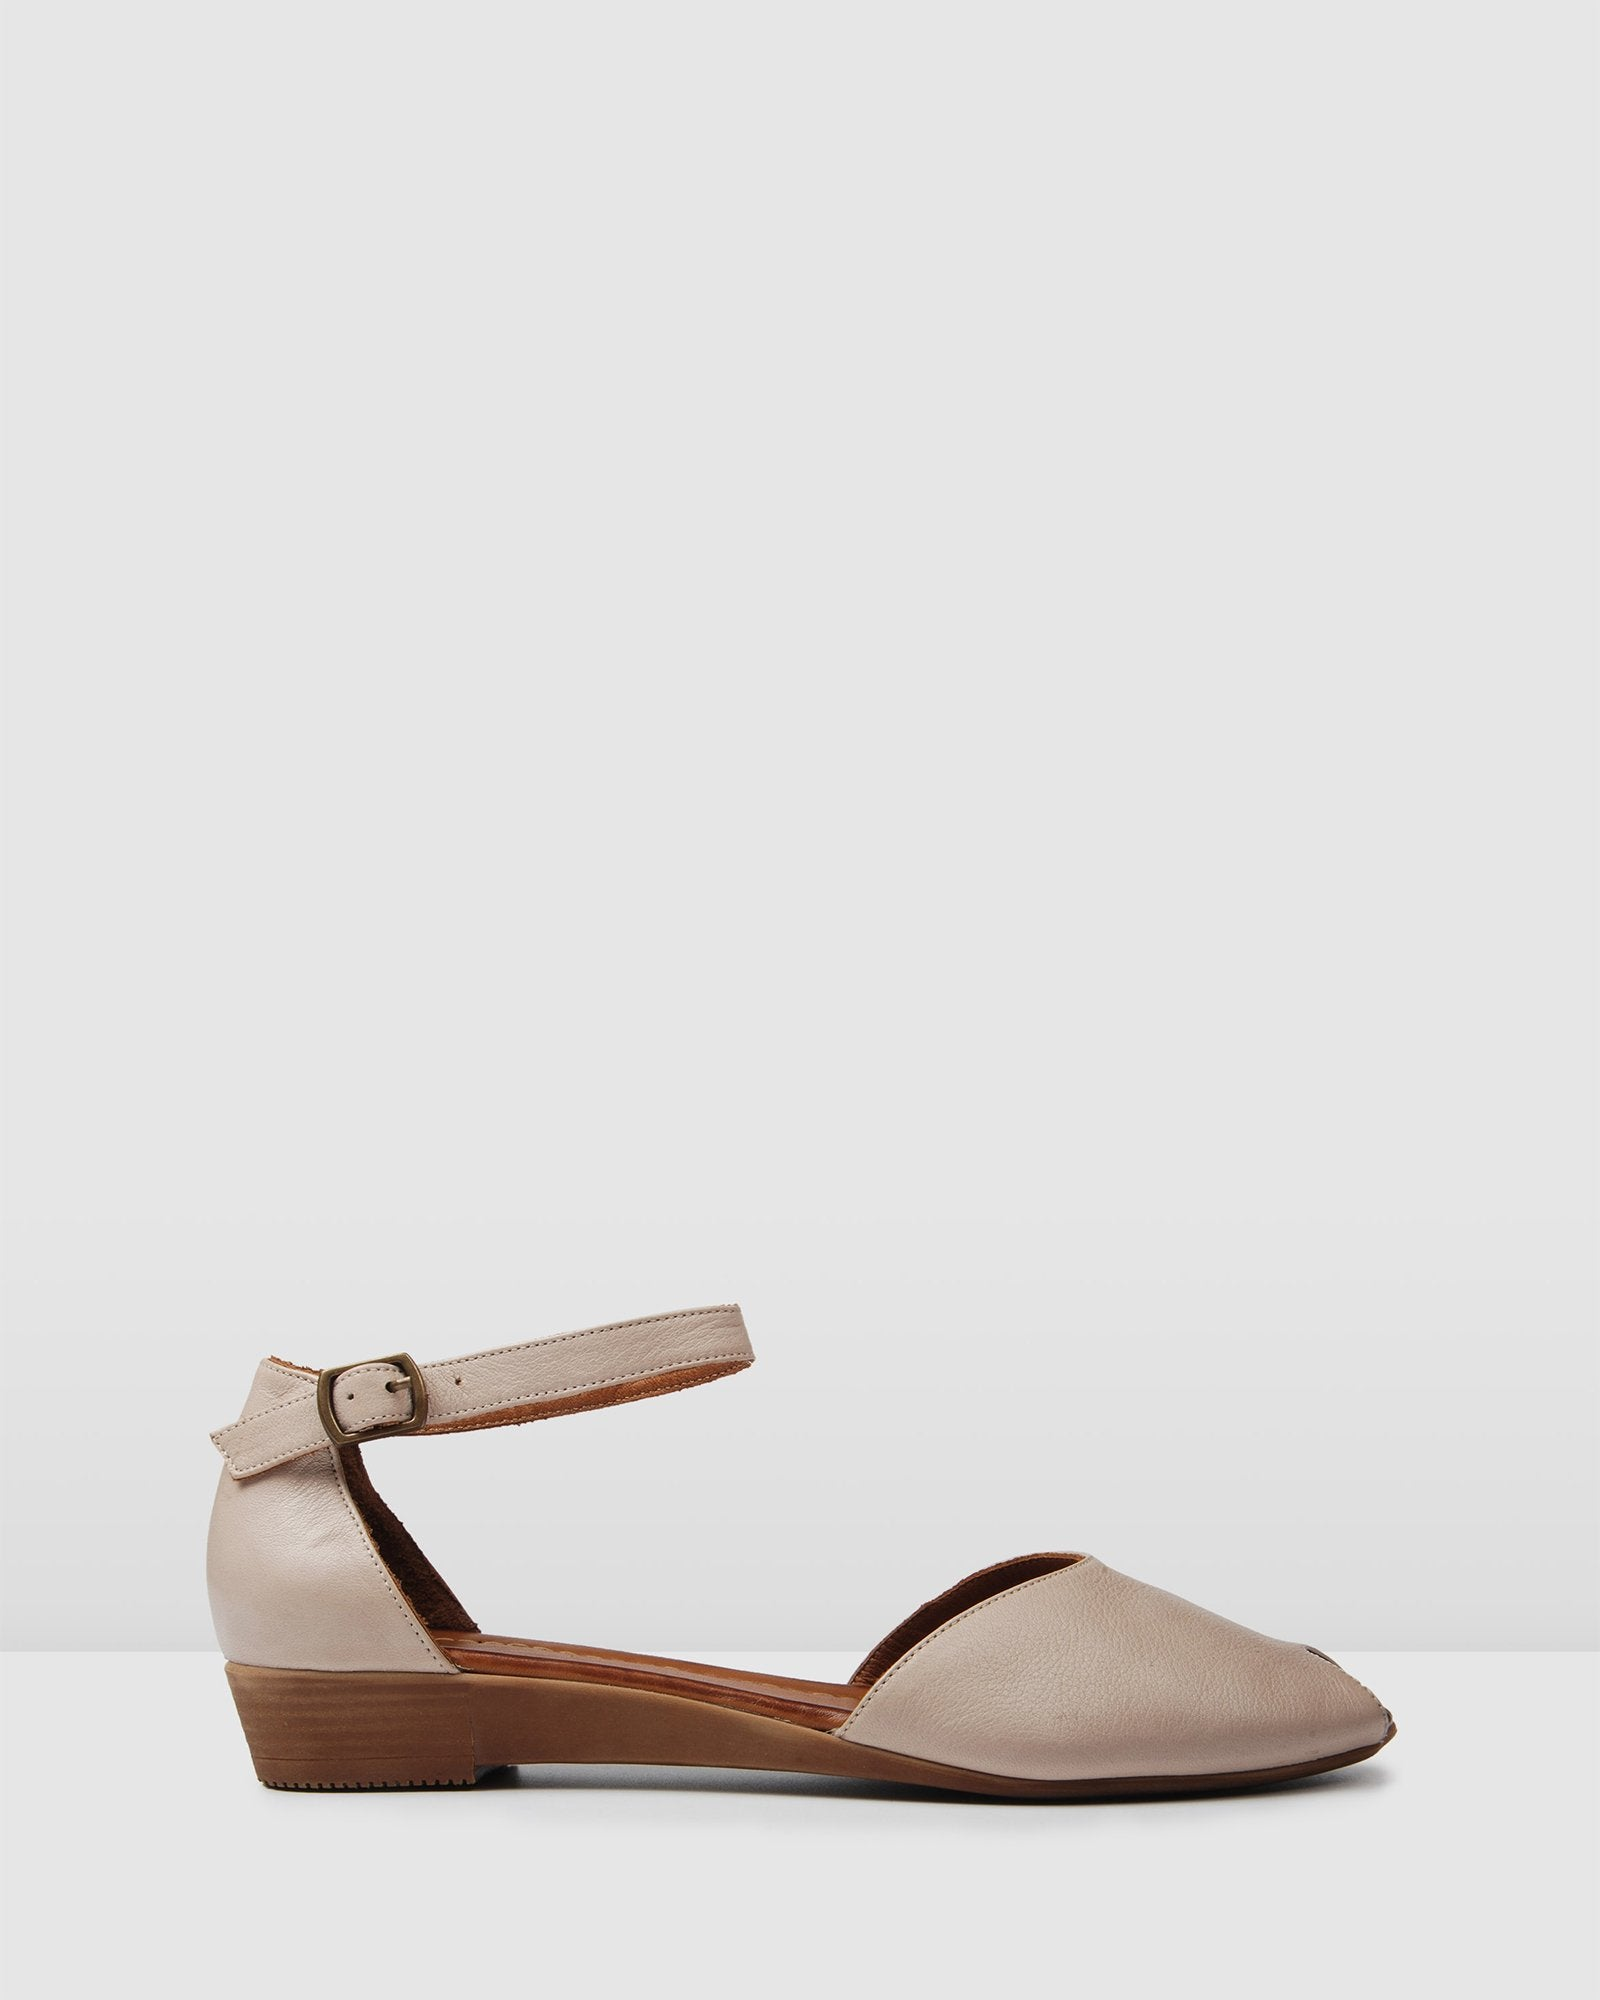 LEXIE FLAT WEDGE SANDALS GREY LEATHER